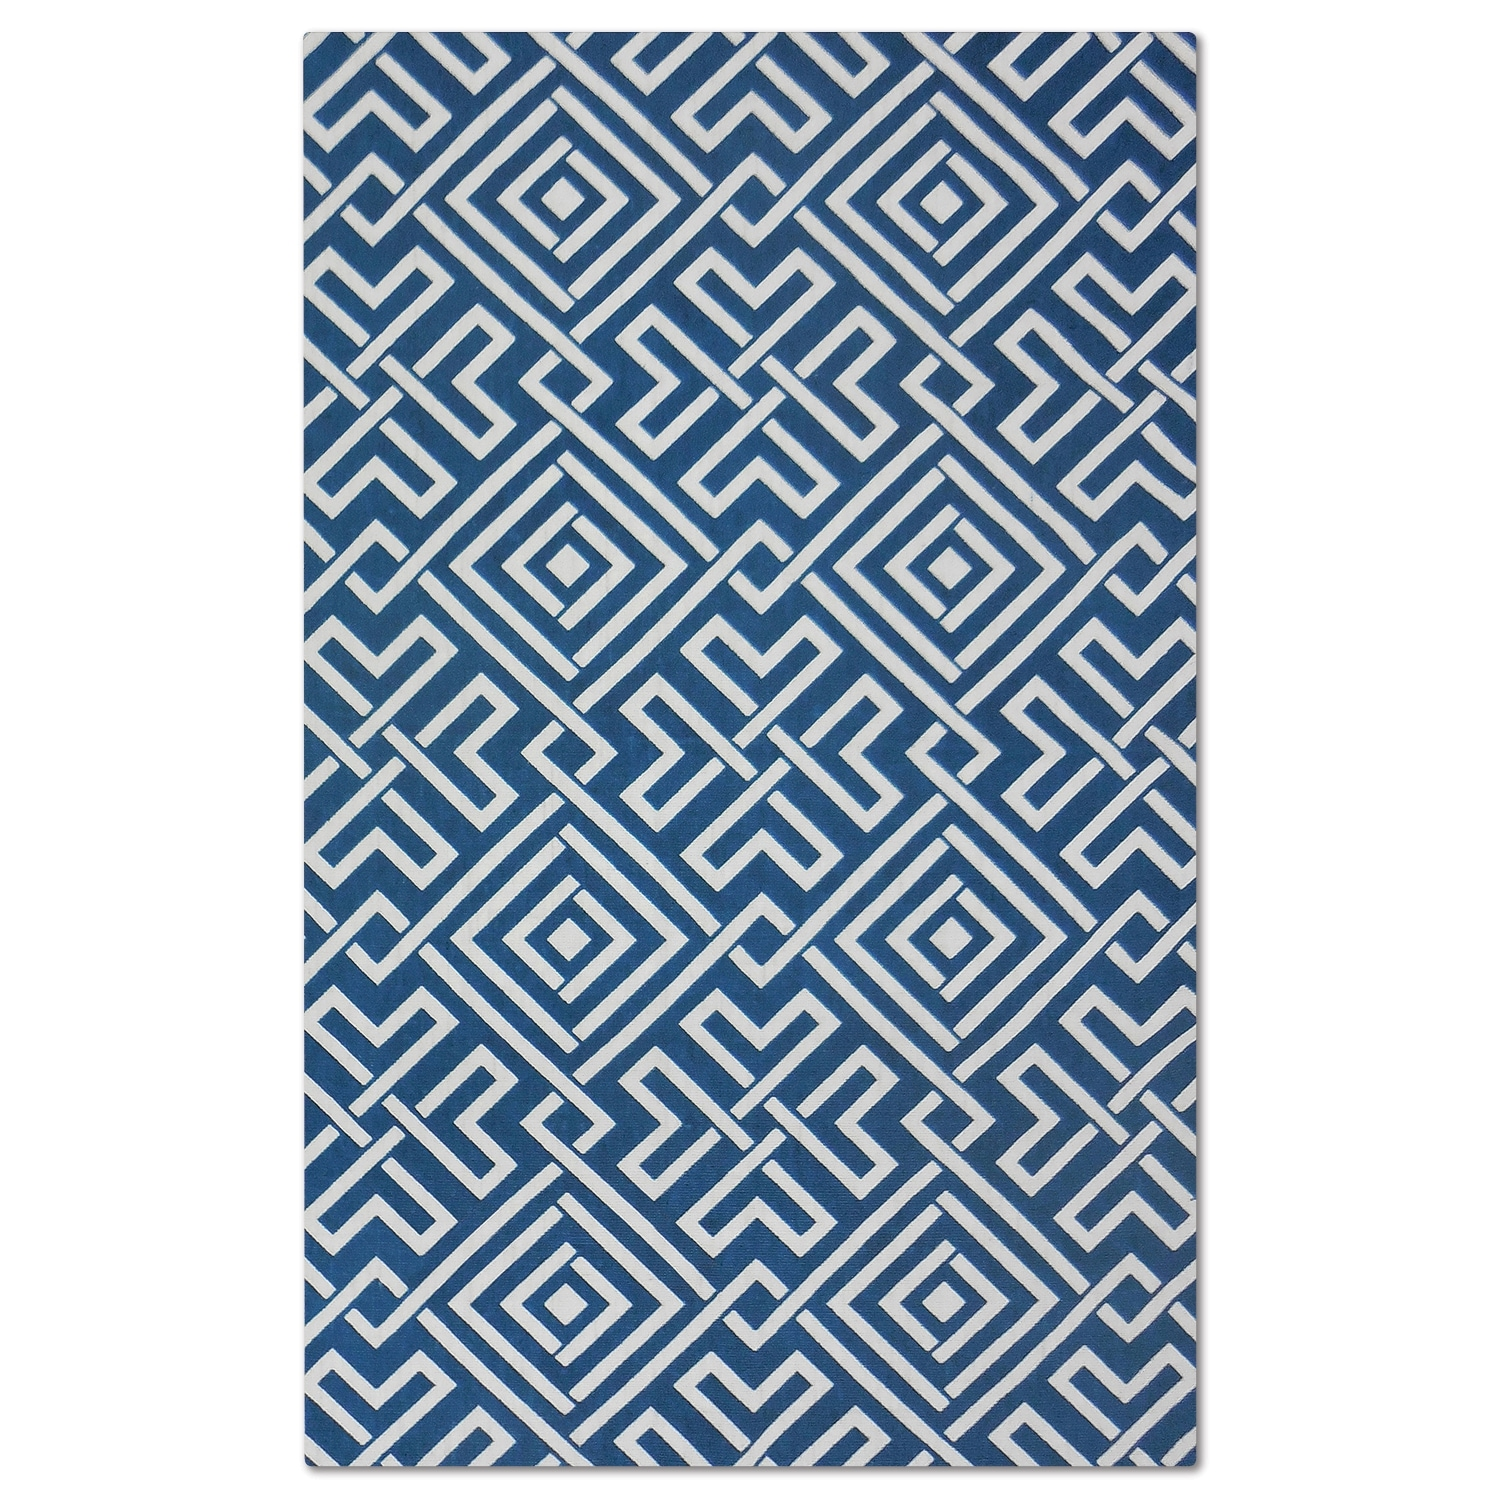 Salon Blue Zigzag Area Rug (5' x 8')